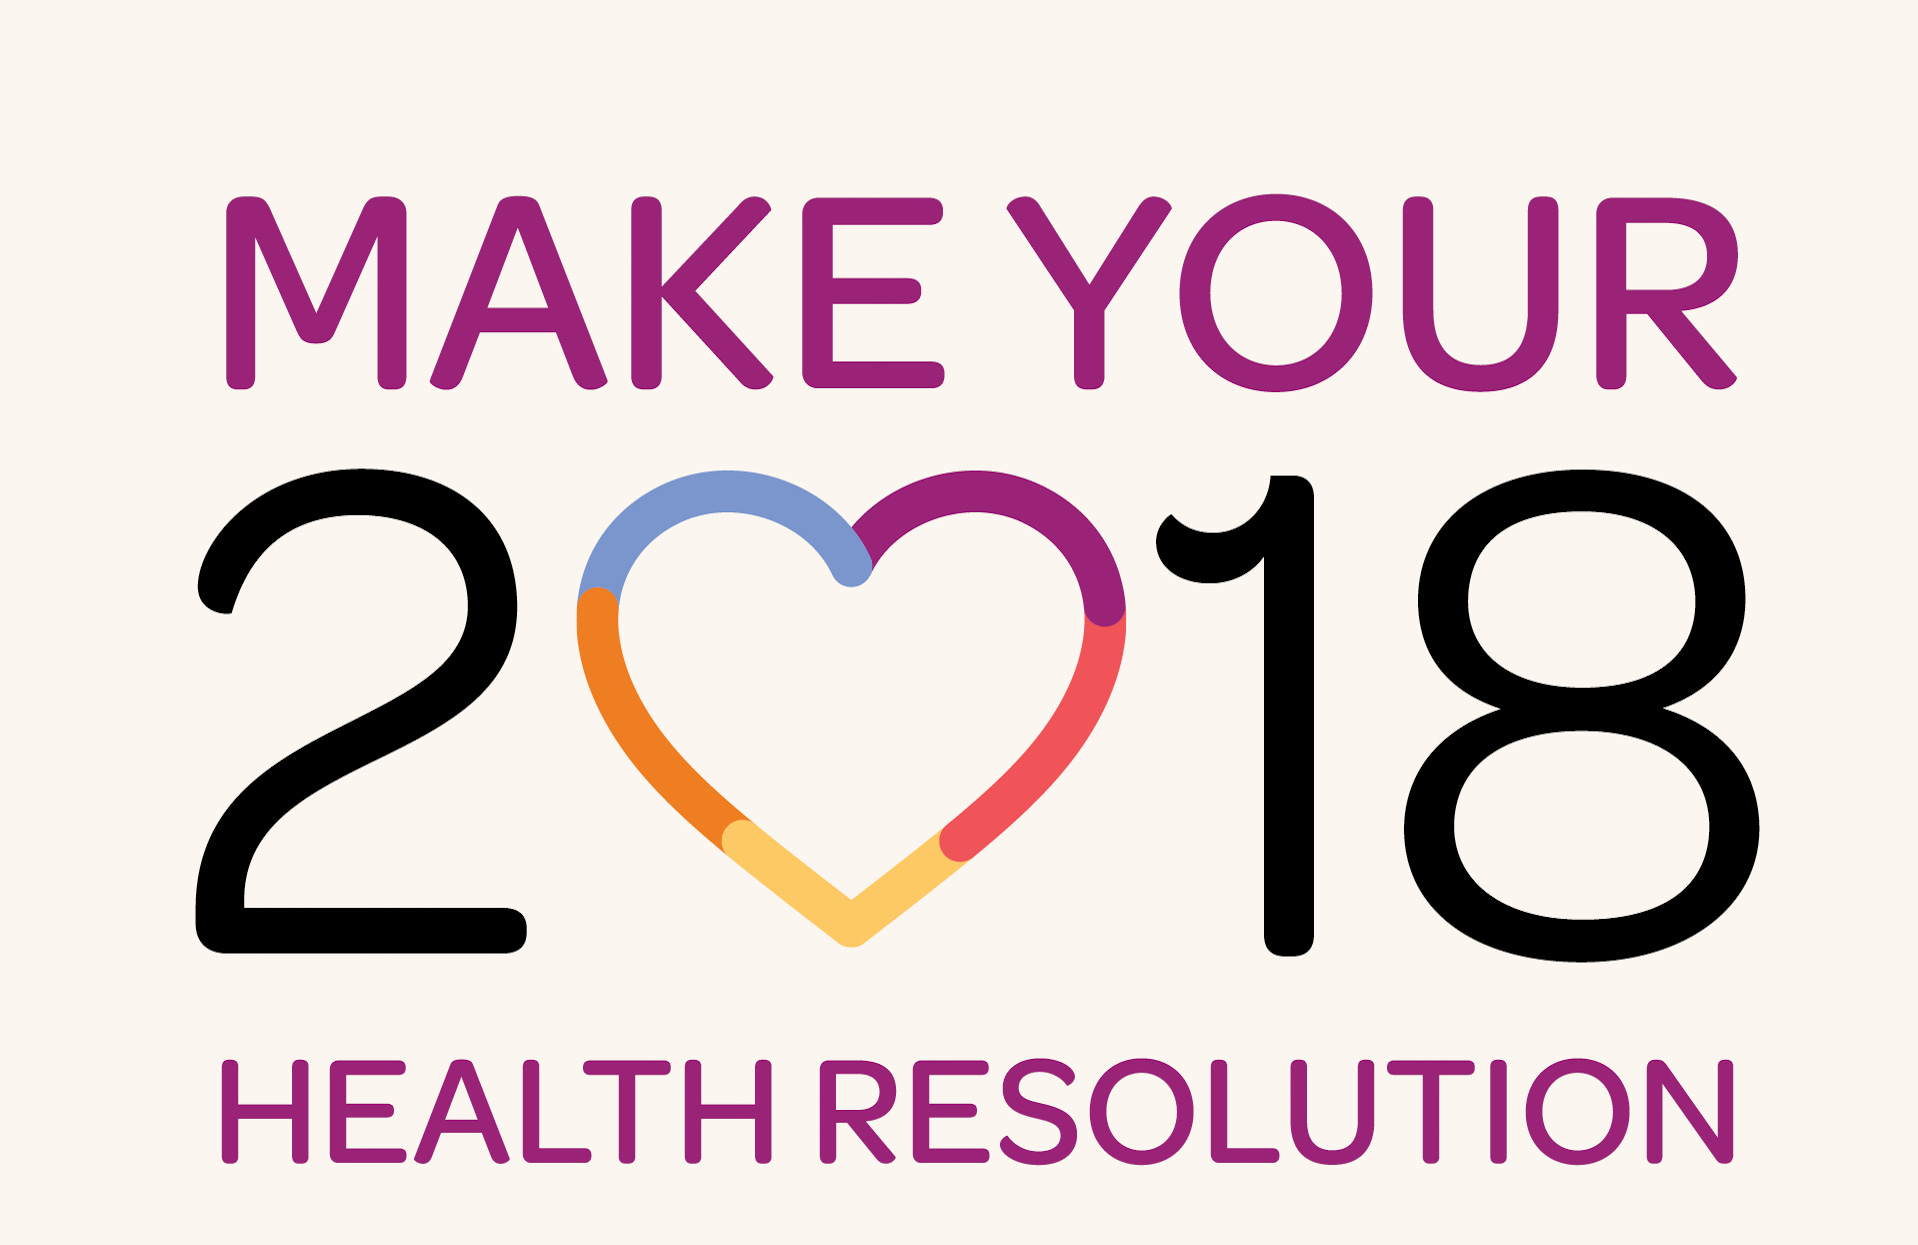 Make your health resolution today!